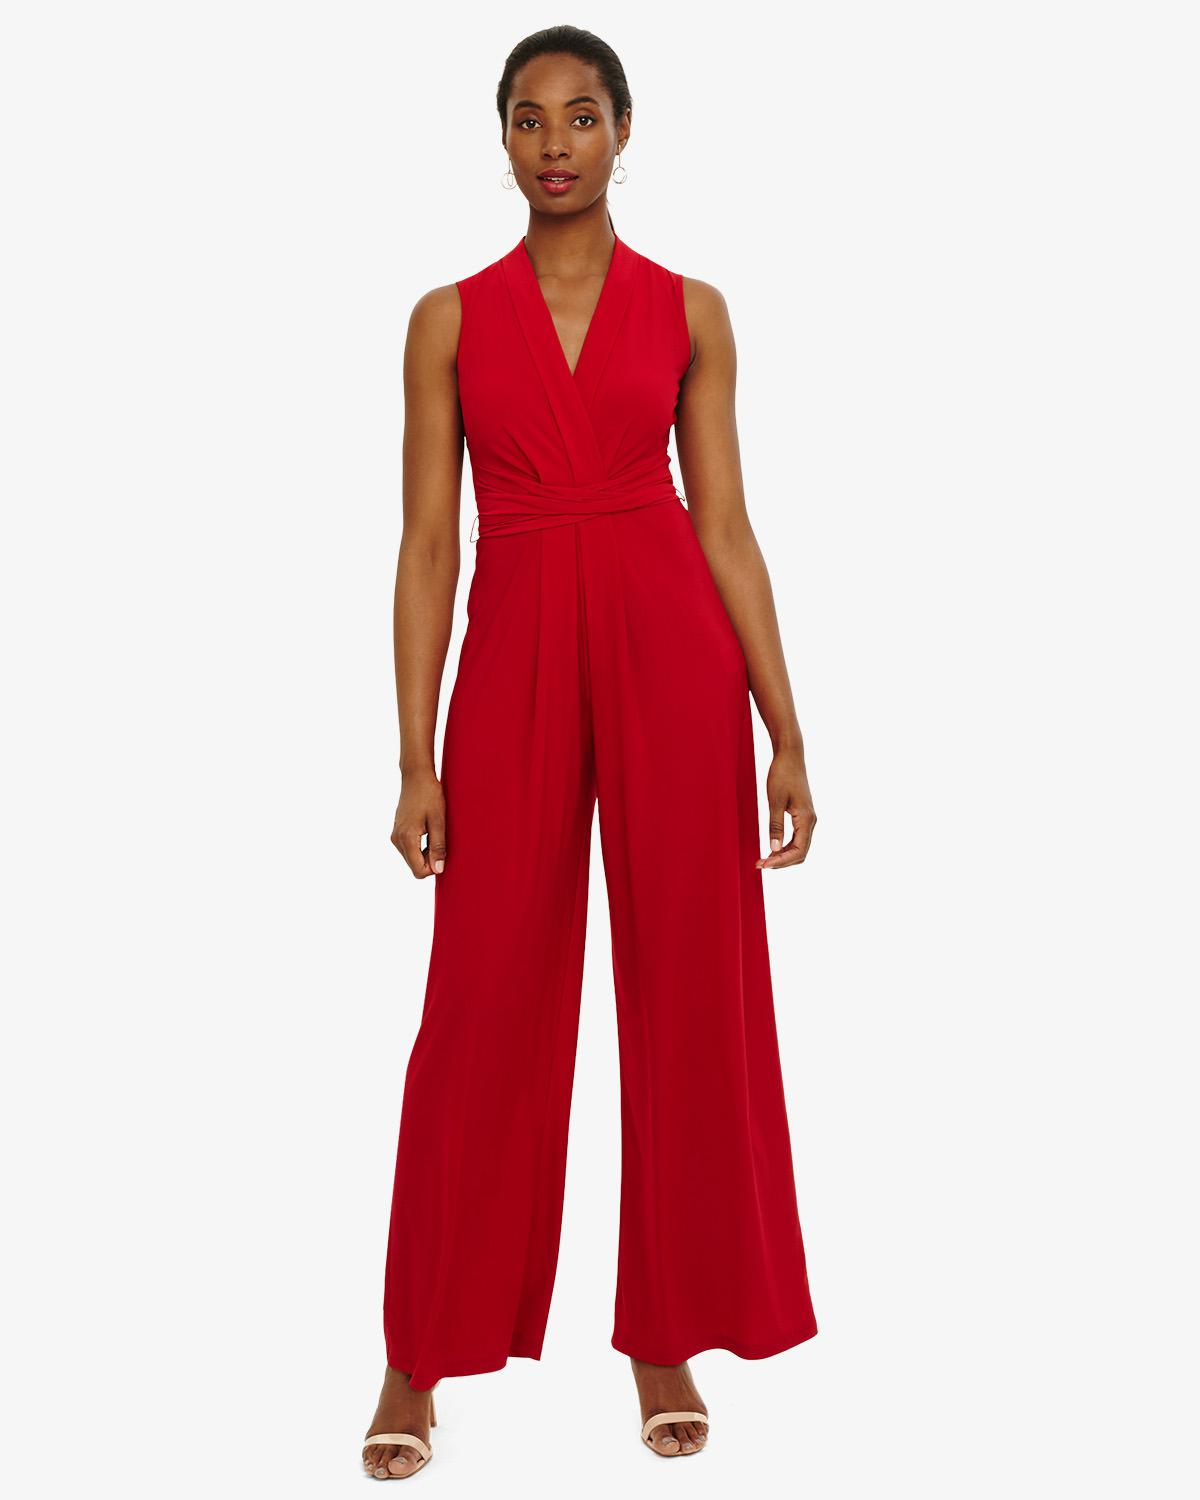 d409fc610ae Phase Eight Tia Sleeveless Jumpsuit in Red - Save 20% - Lyst